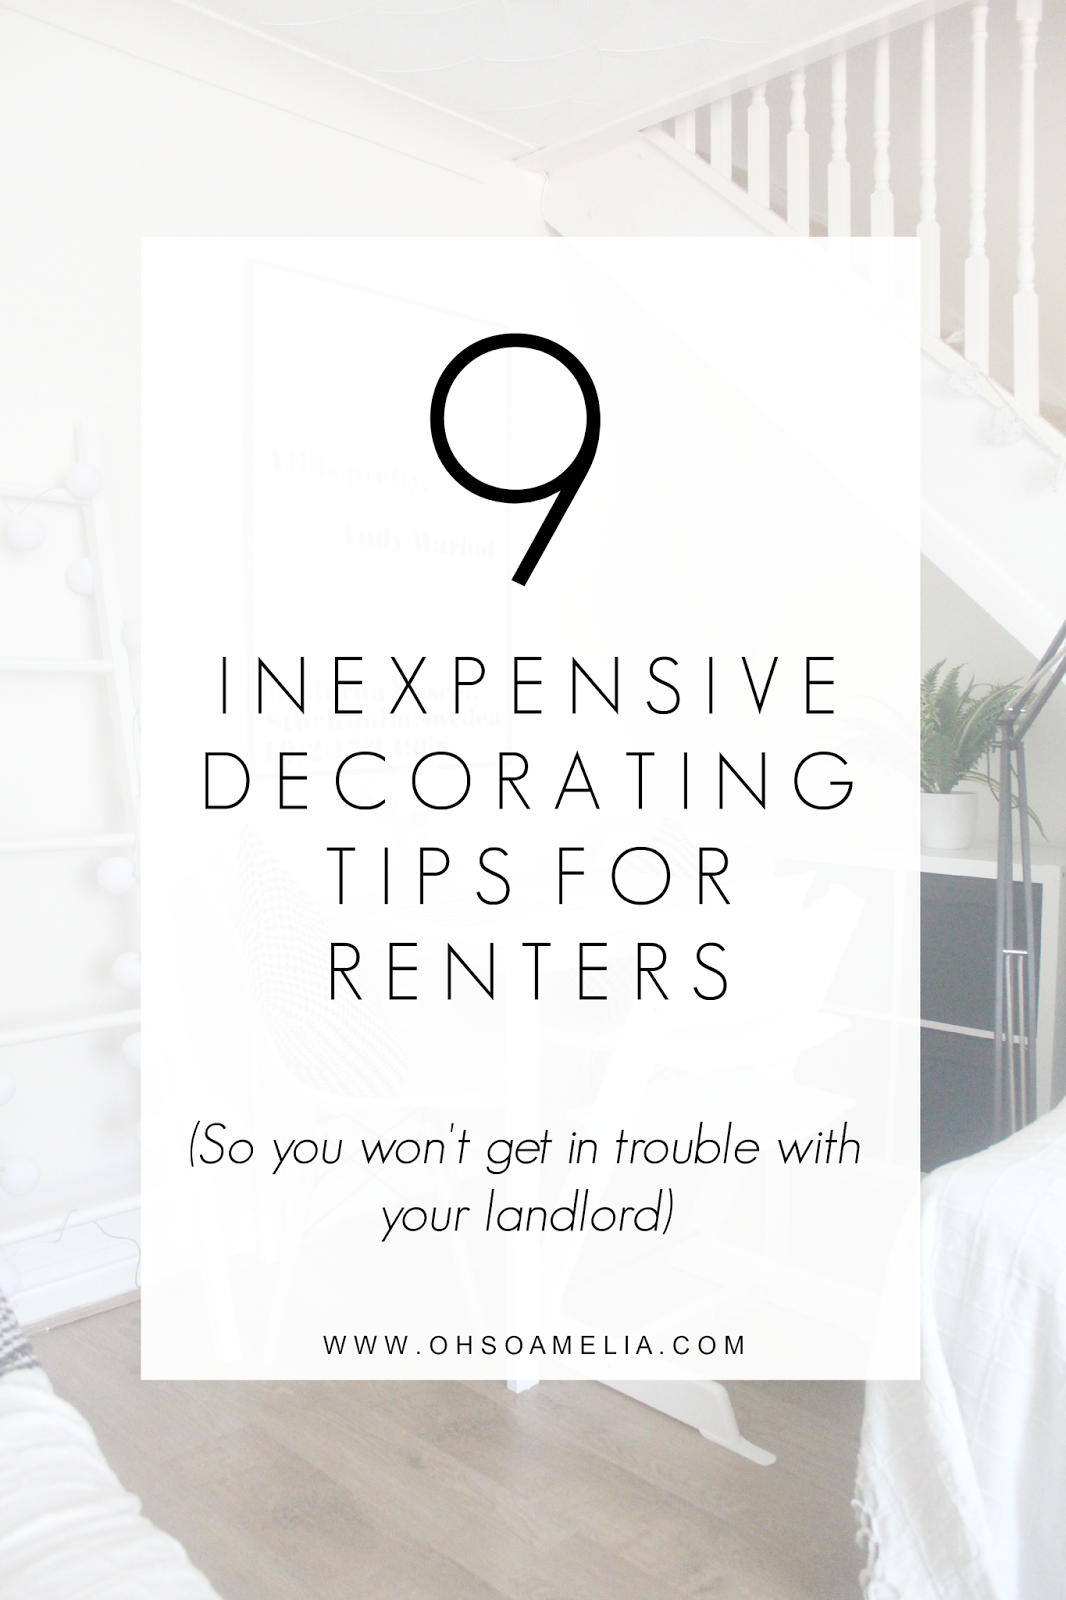 9 Inexpensive Decorating Tips For Renters so you won't get in trouble with your landlord!